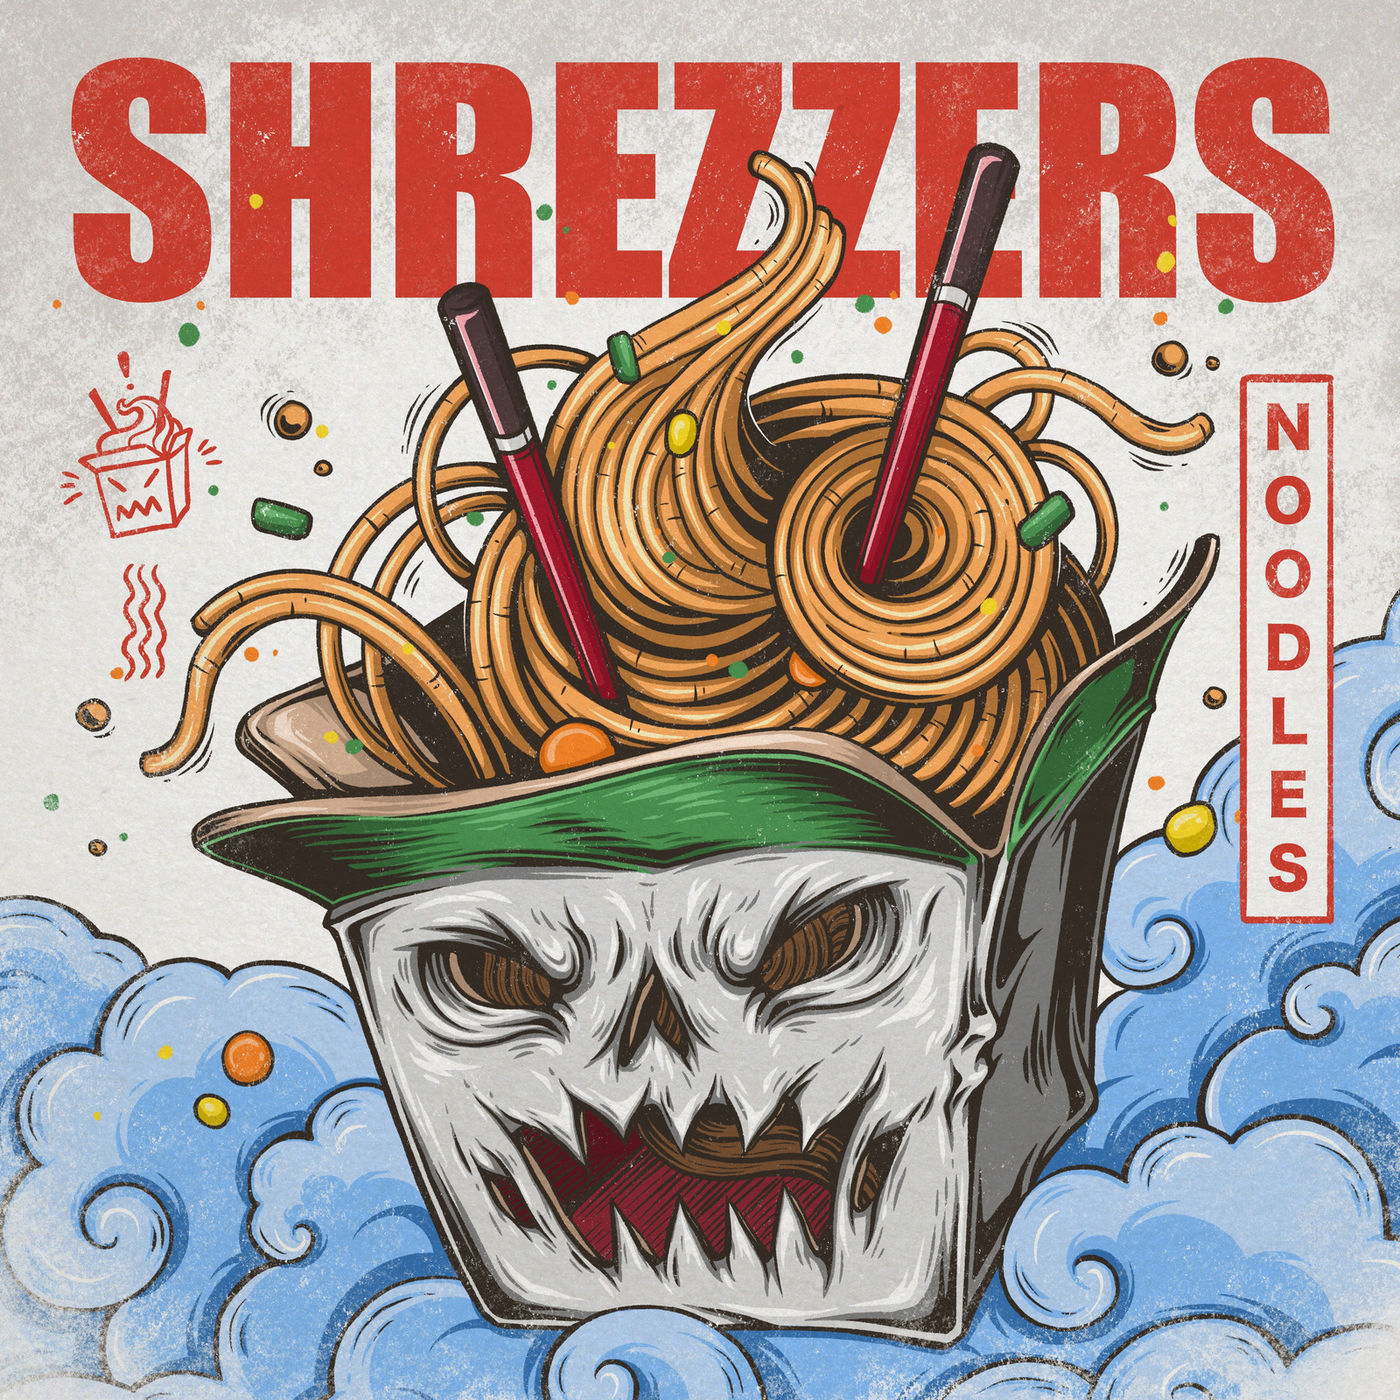 Shrezzers - Noodles [single] (2020)